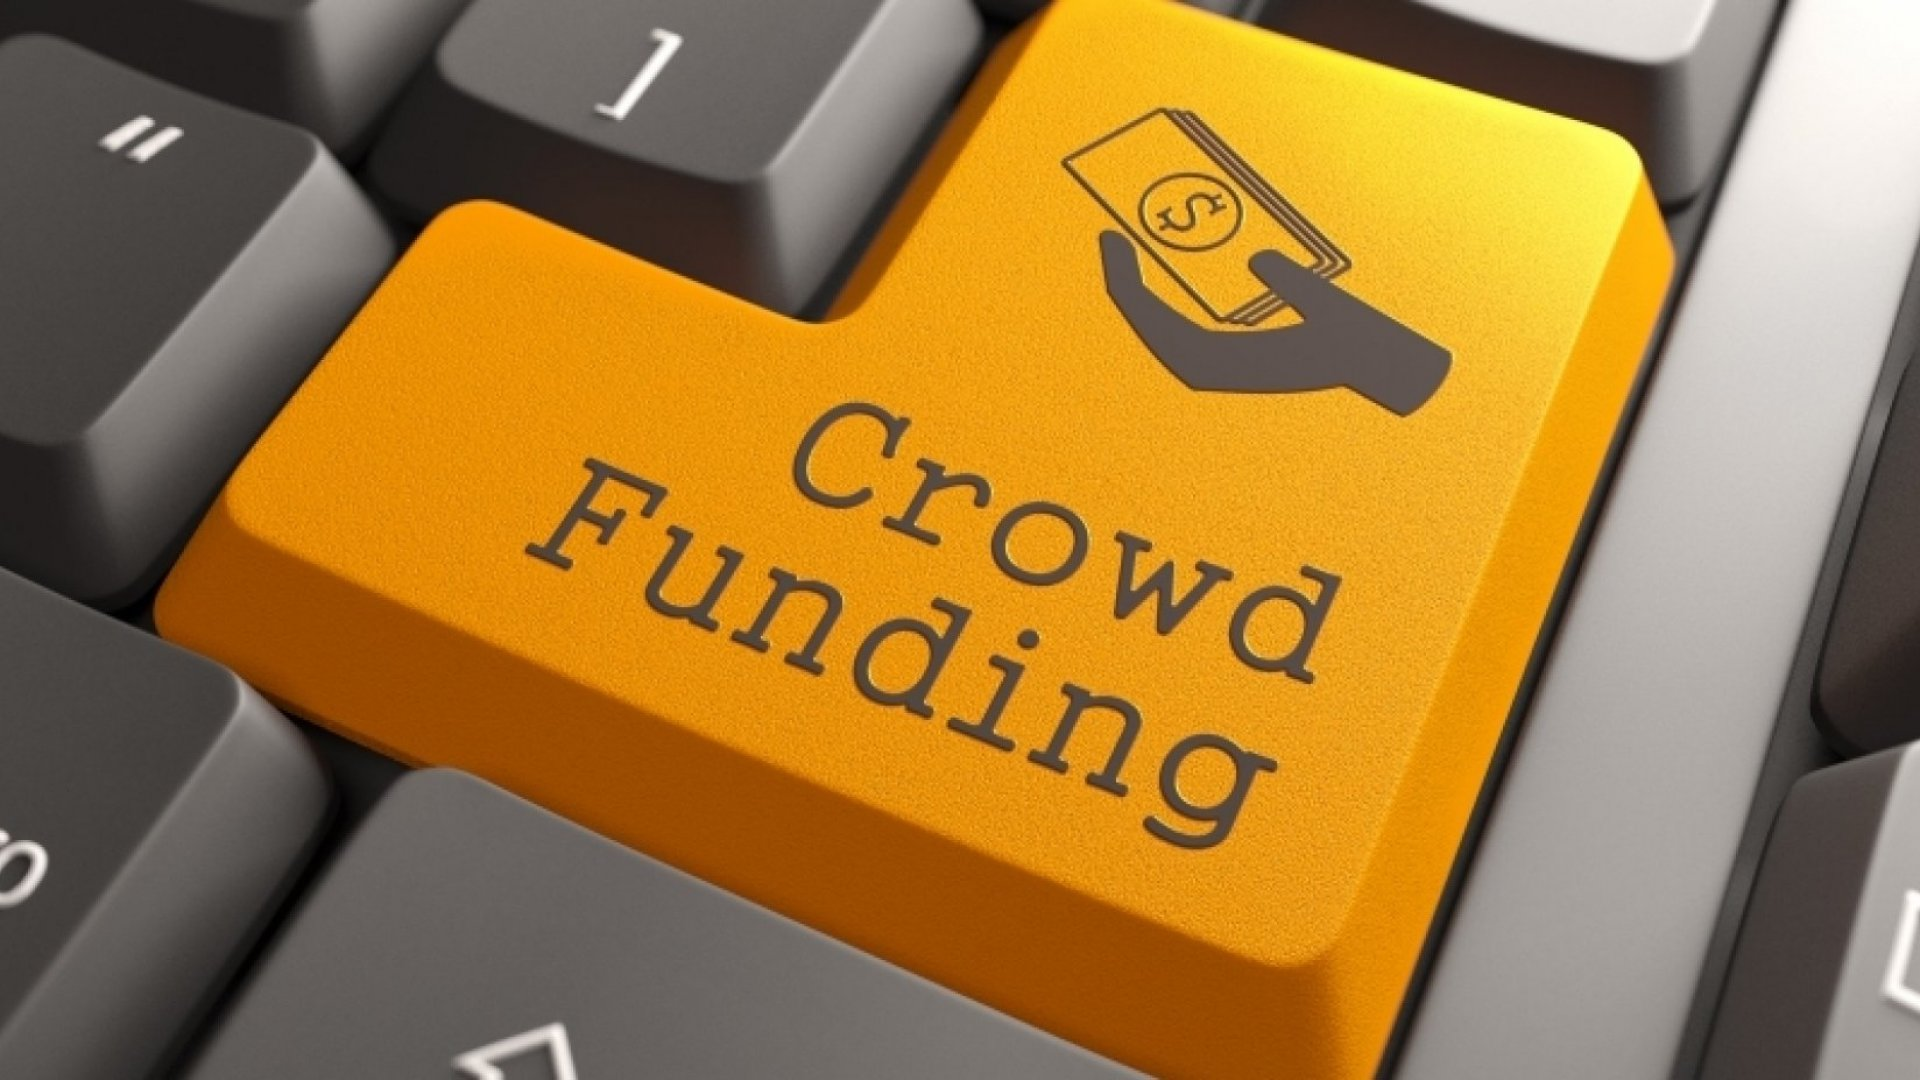 Excited To Invest In Crowdfunded Companies? Experts Suggest Caution